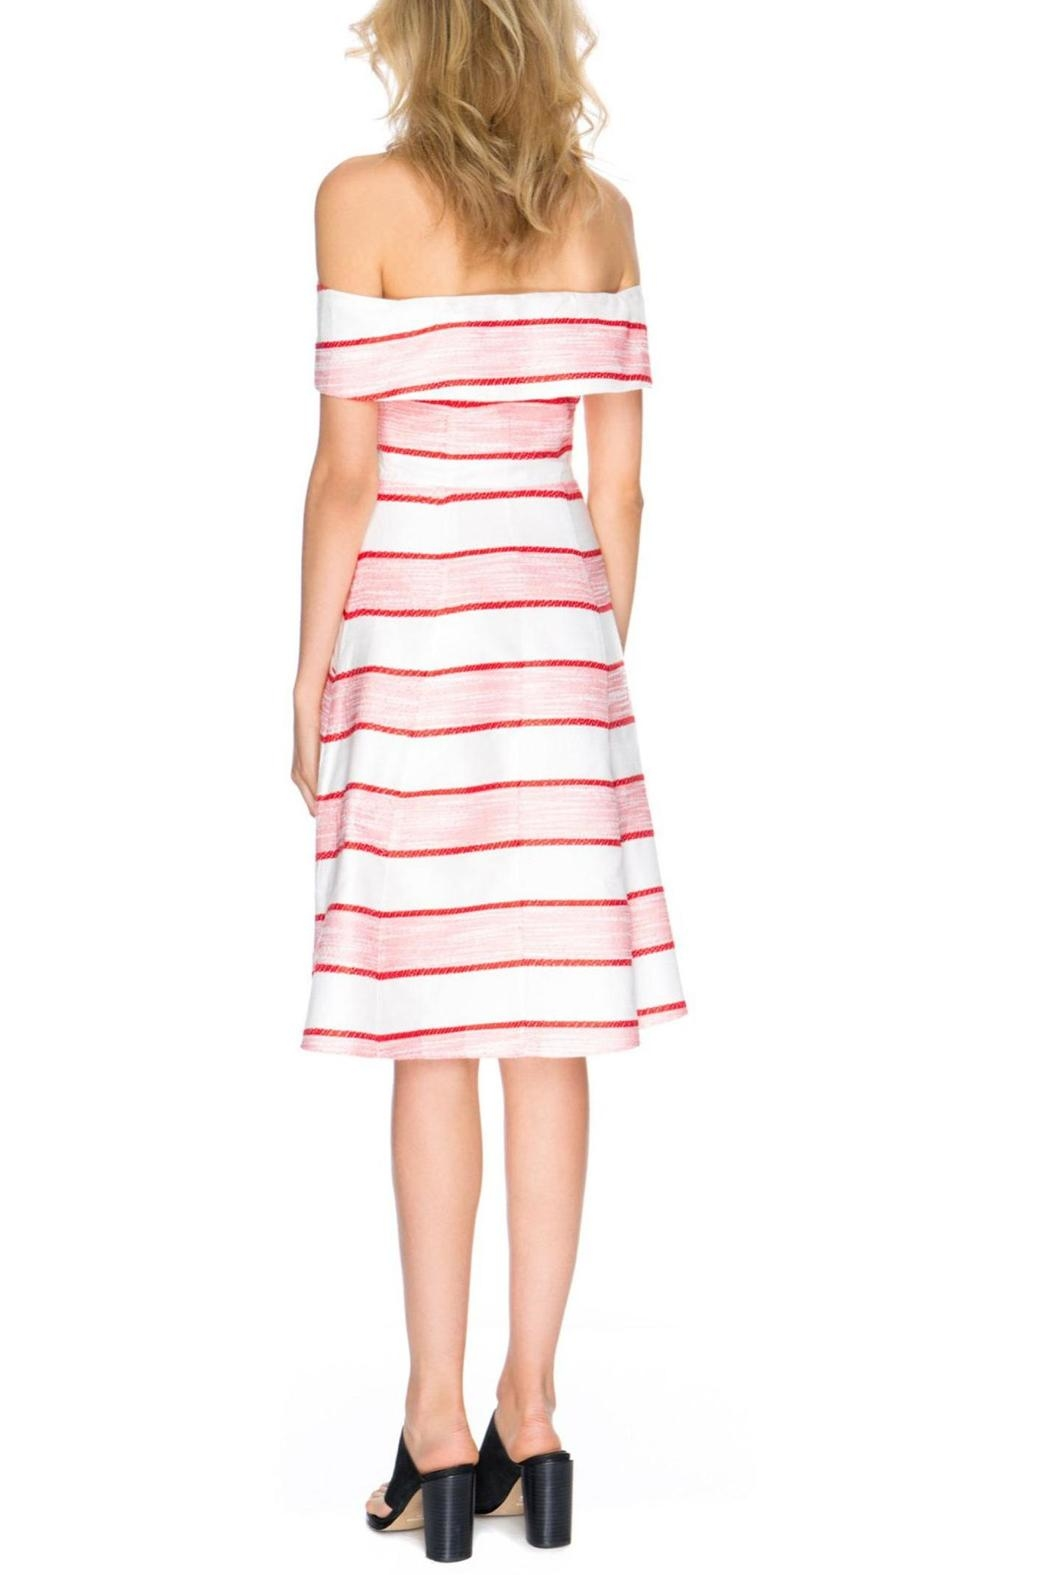 Finders Keepers Begin Again Dress - Front Full Image